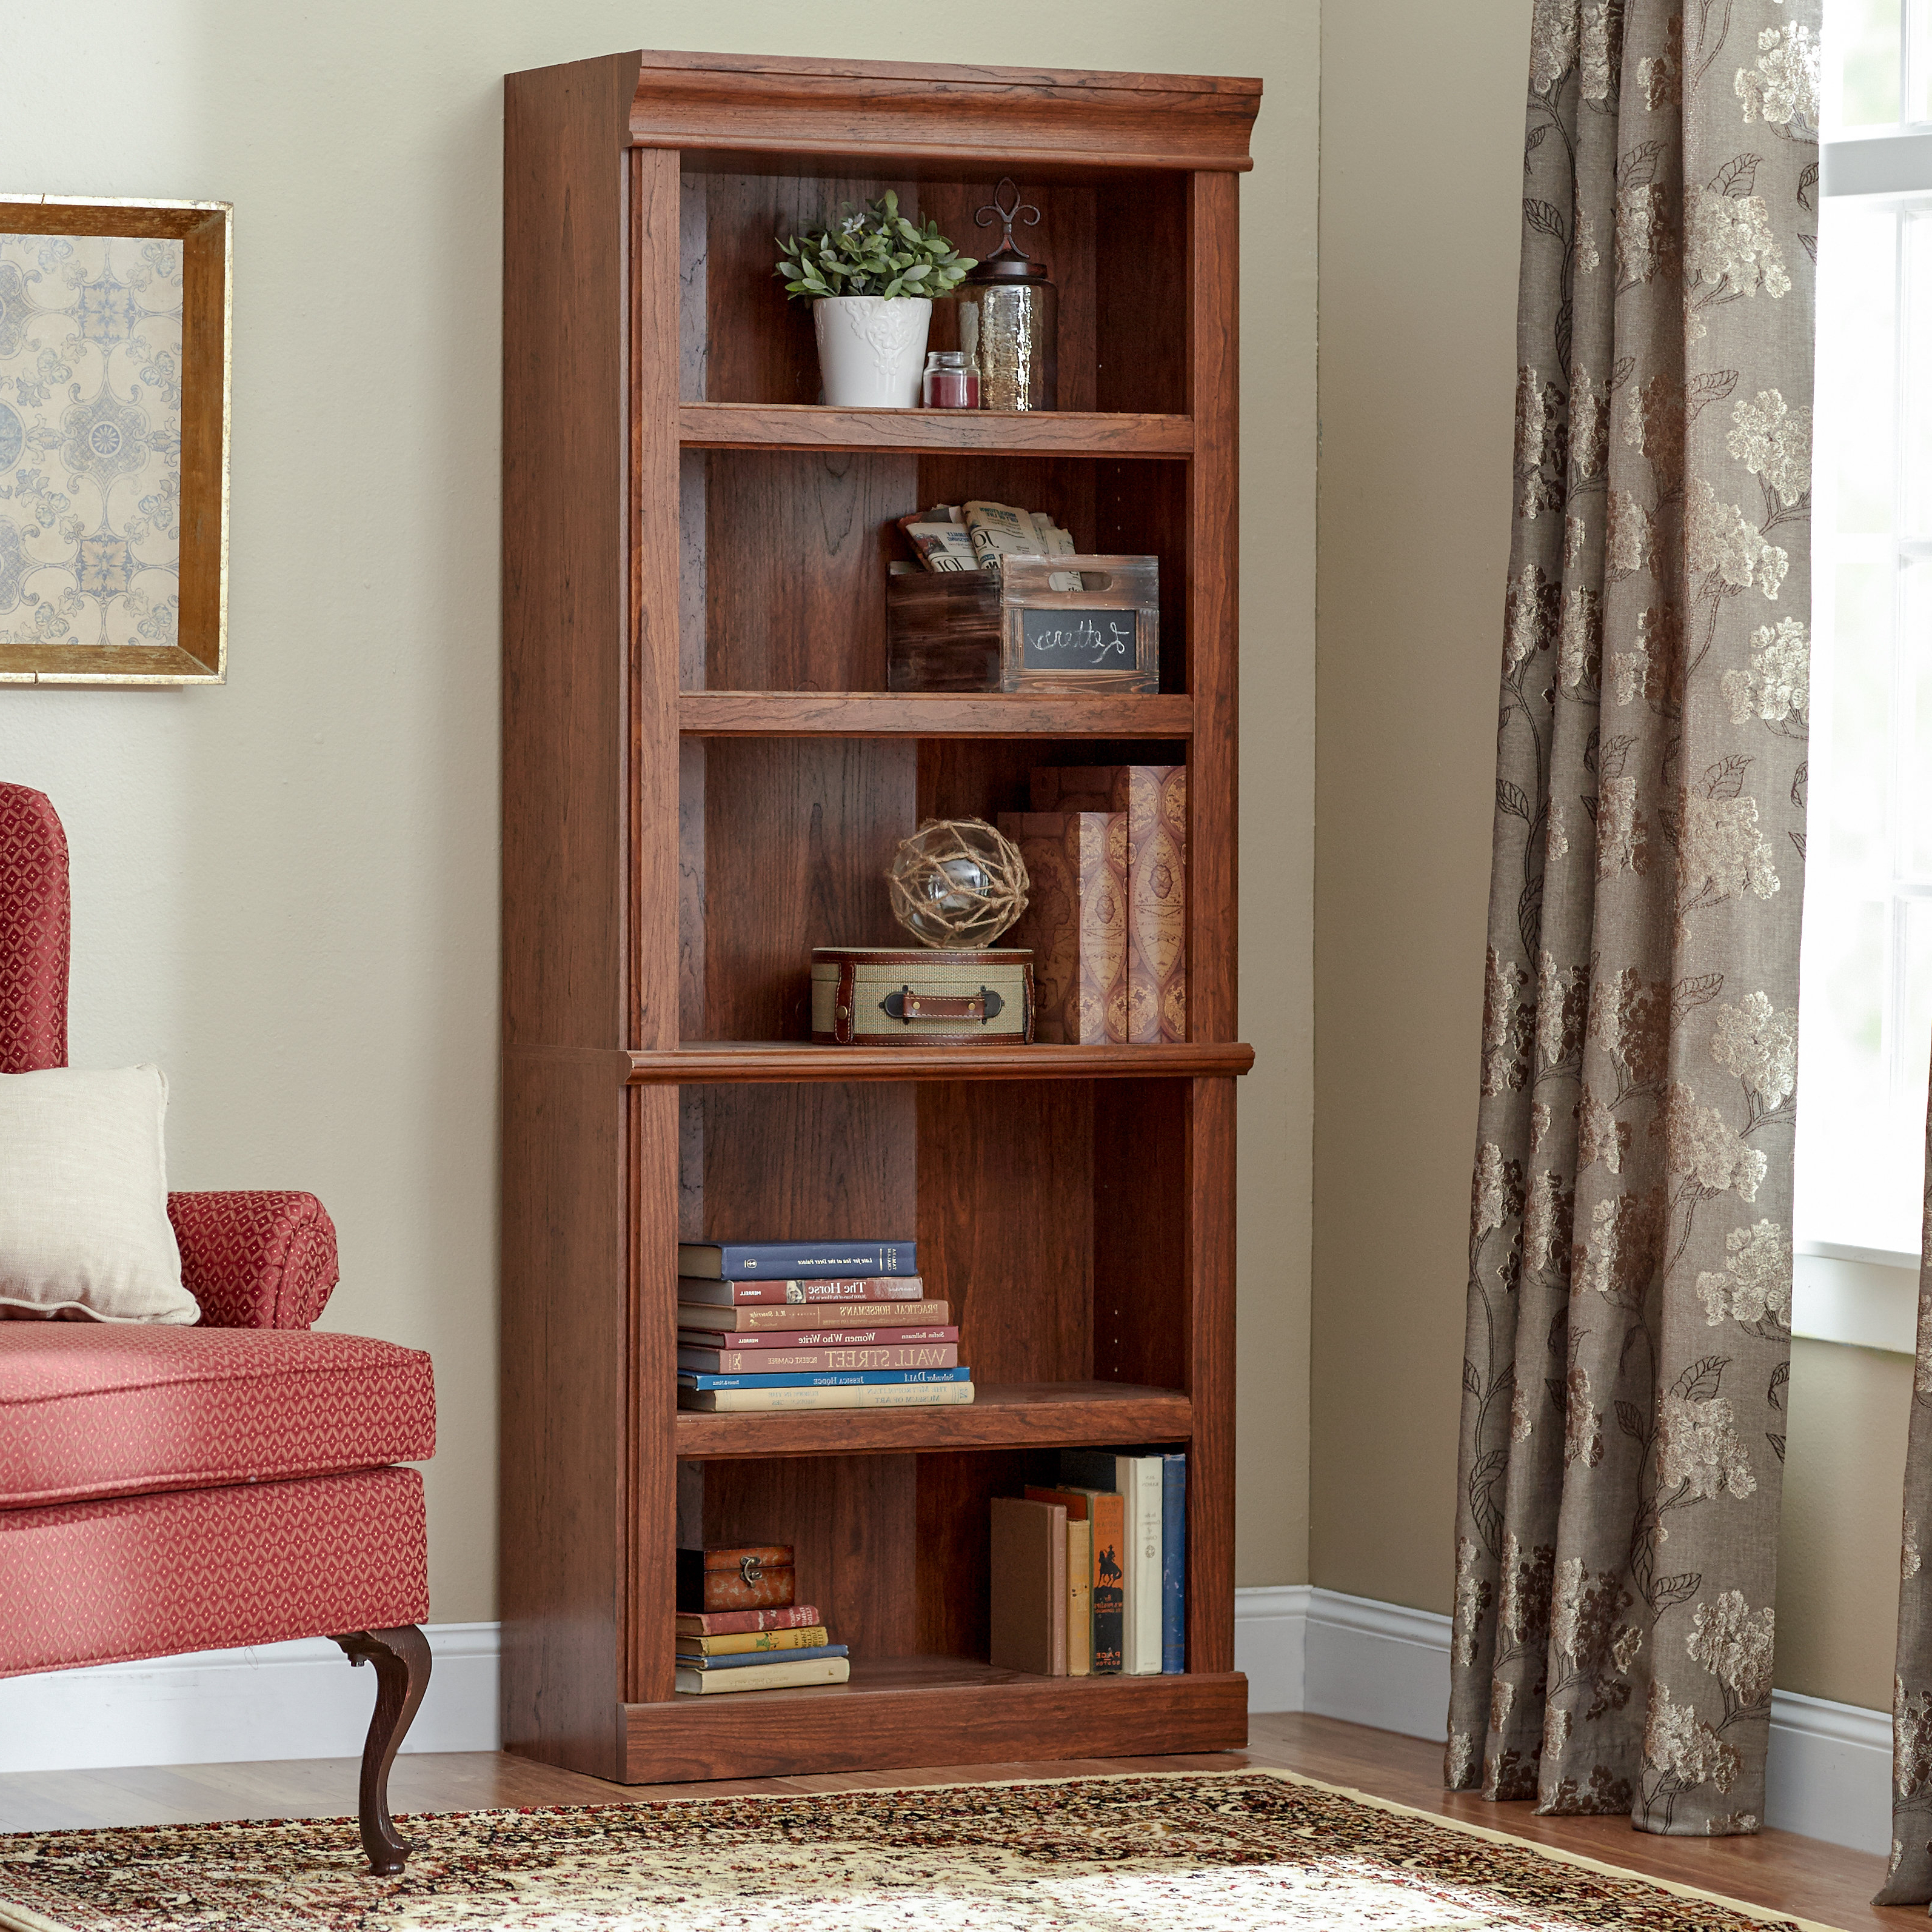 Orford Standard Bookcases Inside Well Known Thaler Standard Bookcase (View 11 of 20)